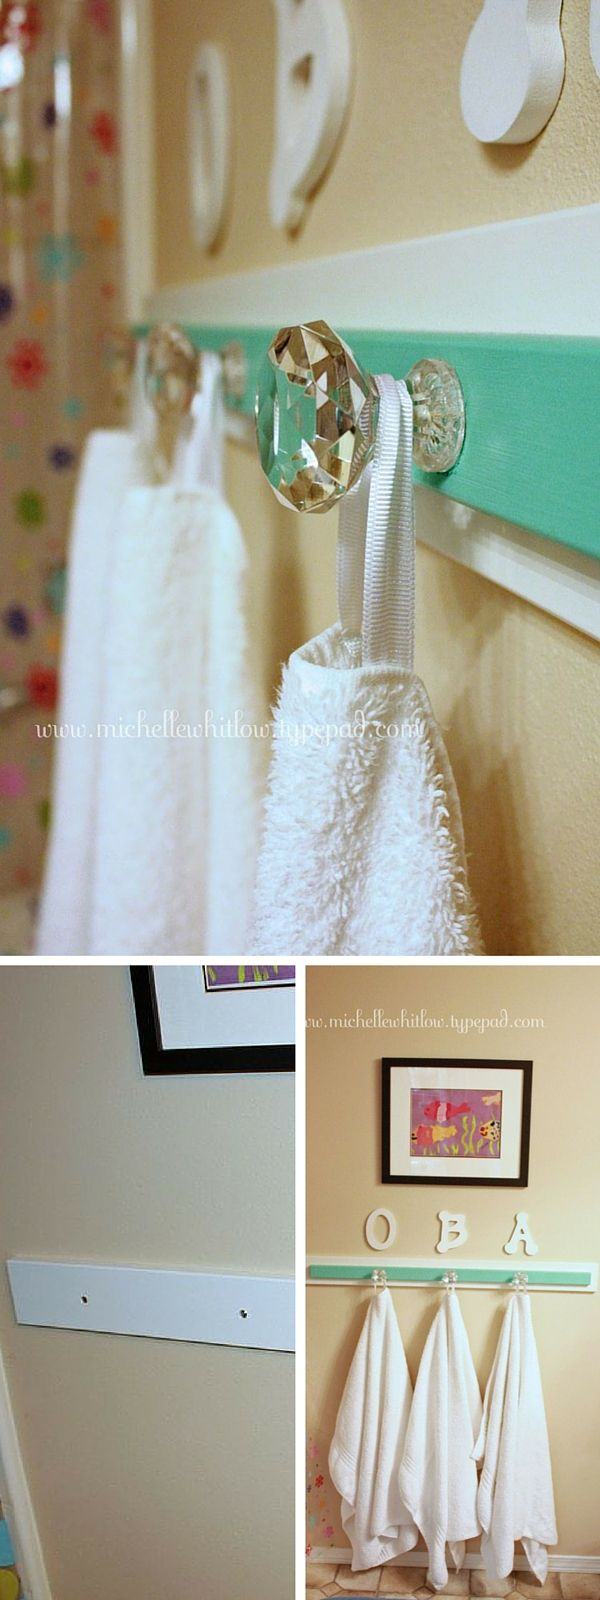 best 25 bathroom towel hooks ideas only on pinterest diy 10 diy bathroom upgrades to impress